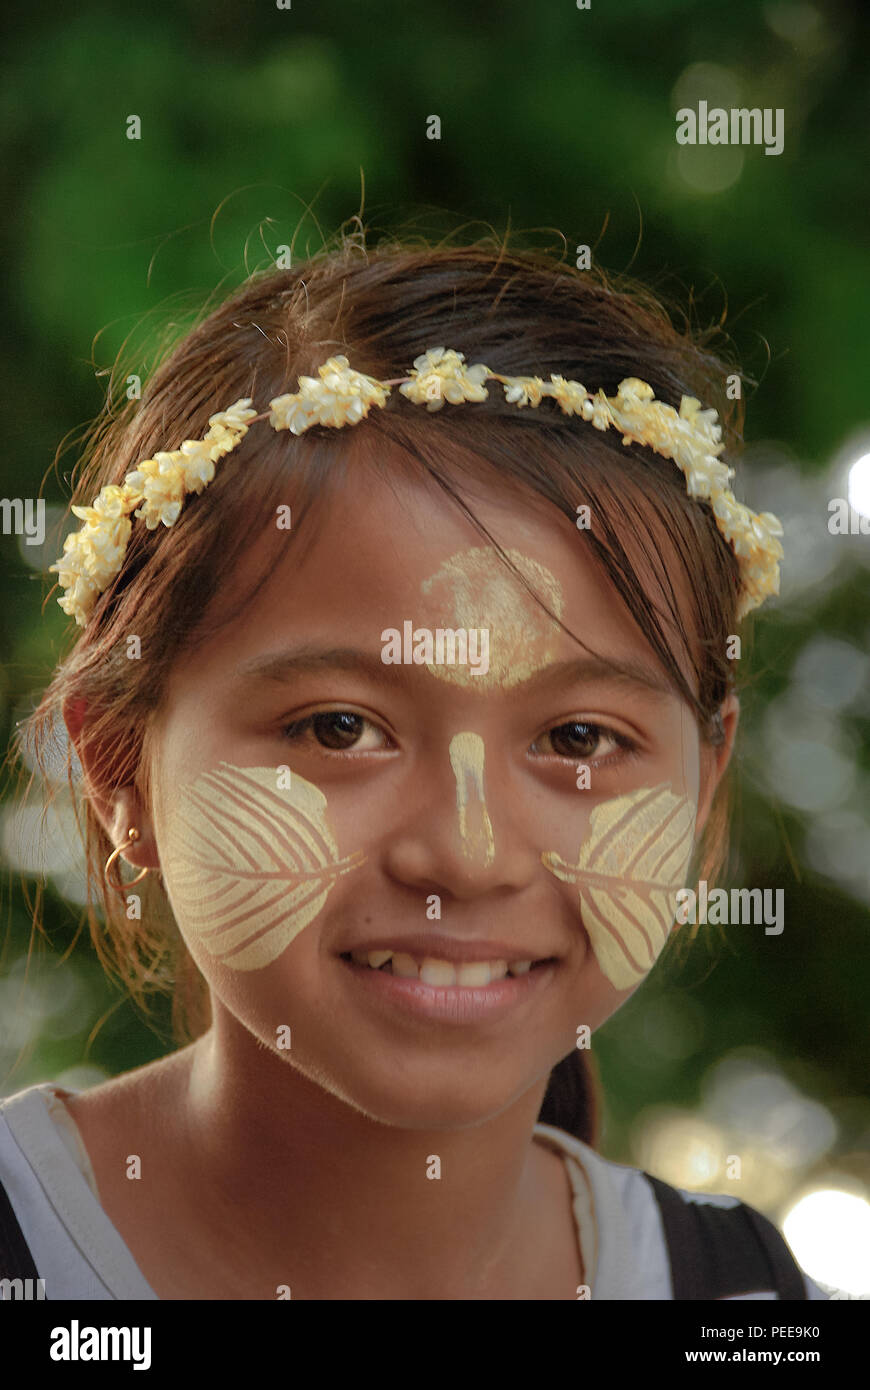 Burmese girl with a wreath on her head smiling looking straight at the camera. - Stock Image